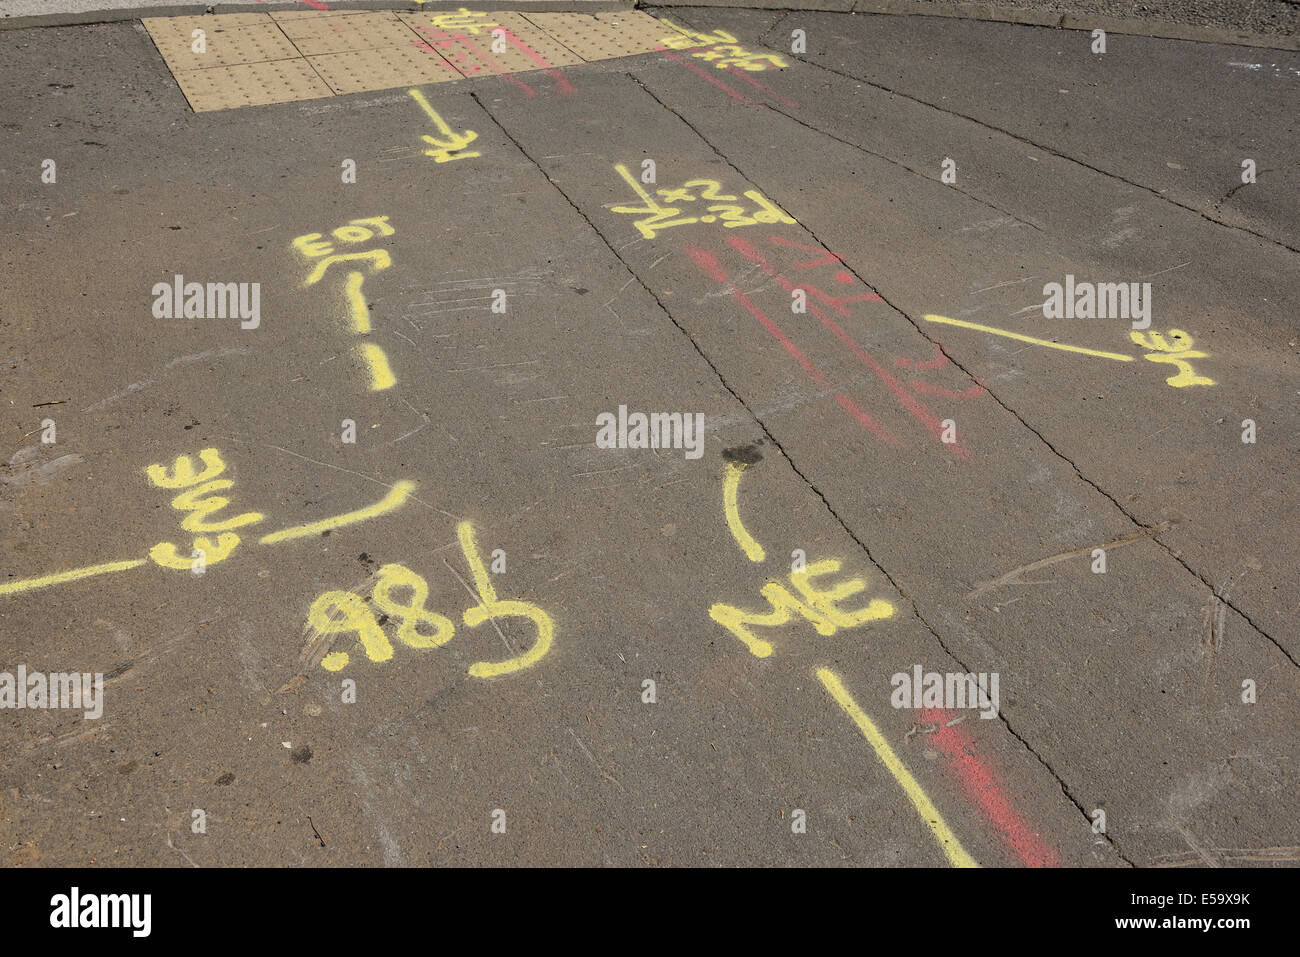 Spray painted lines and markings on a pavement indicating the position of underground utilities - Stock Image